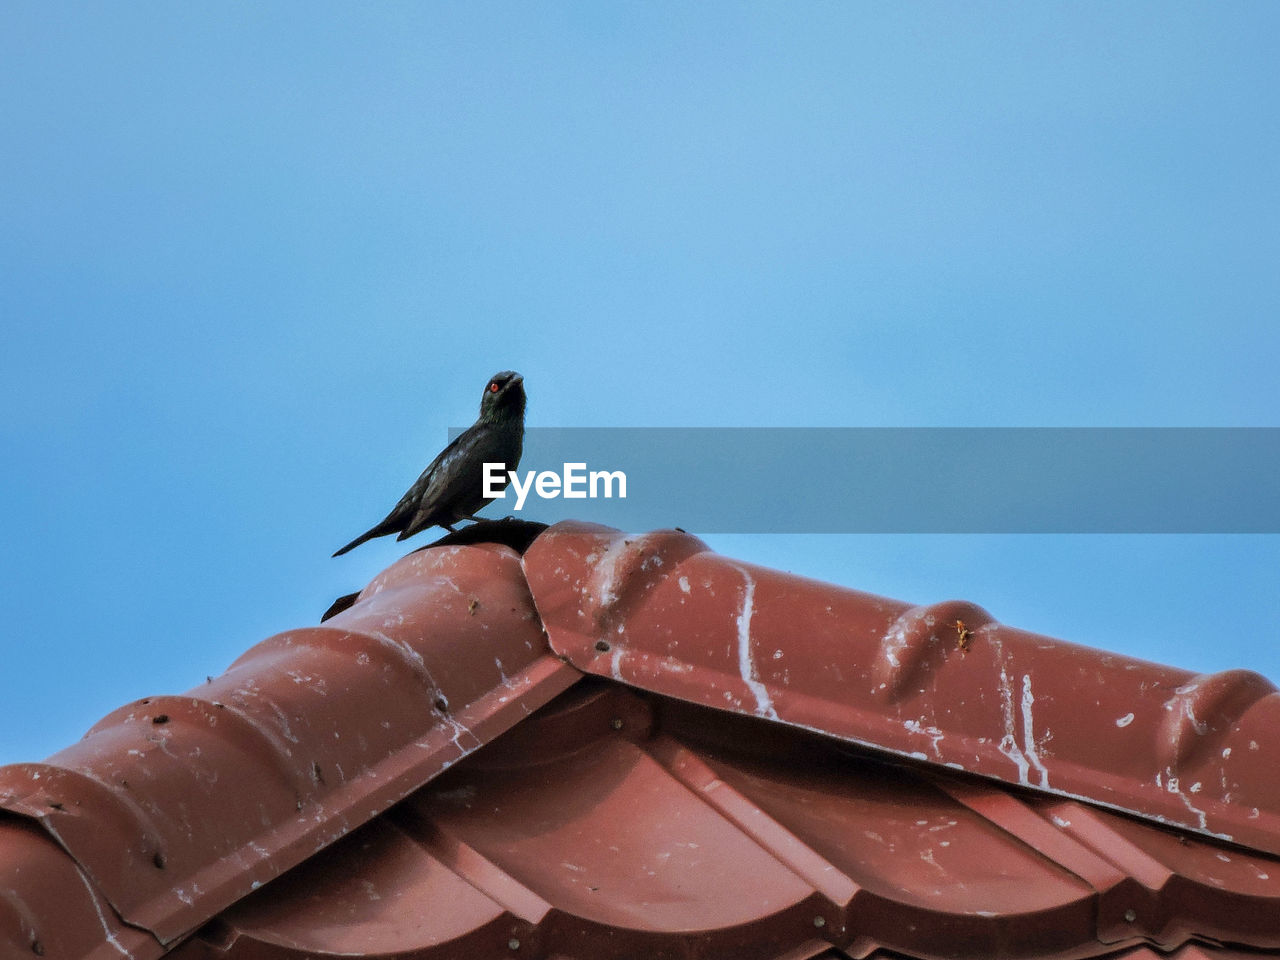 animal themes, animal, vertebrate, bird, animal wildlife, animals in the wild, sky, one animal, copy space, perching, clear sky, nature, day, no people, low angle view, blue, outdoors, metal, roof, roof tile